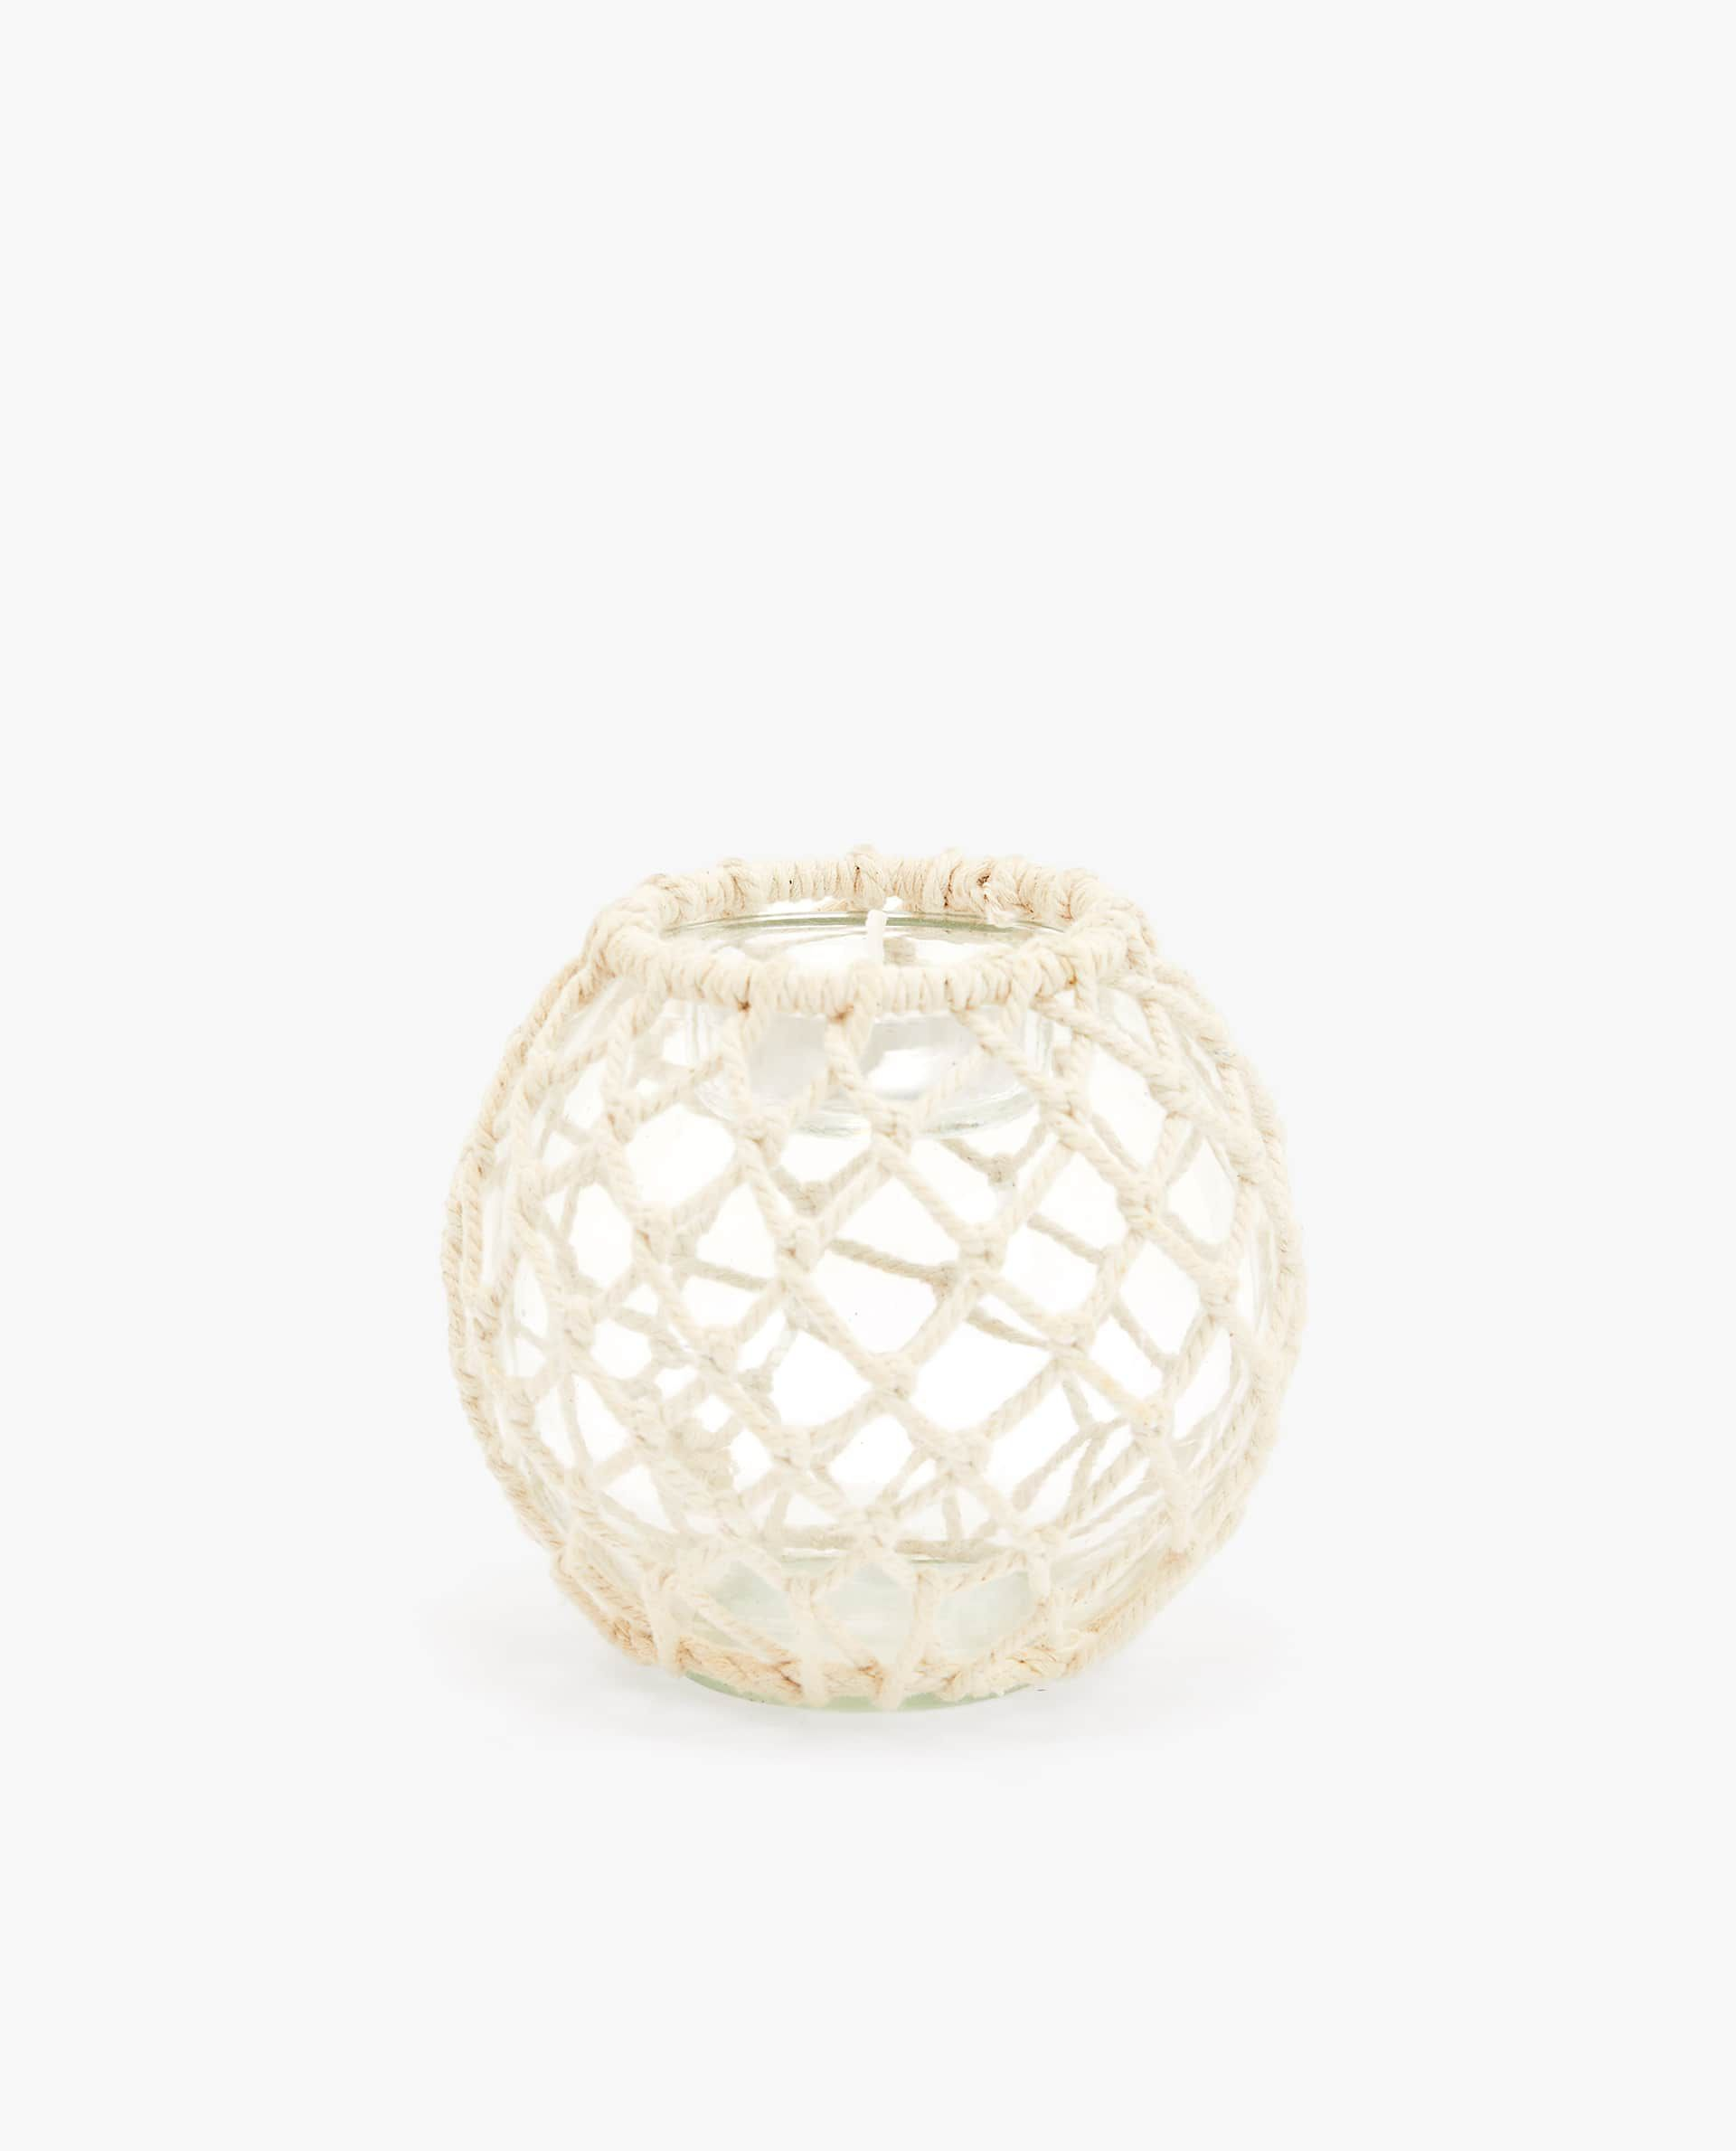 Tealight Holder with Rope